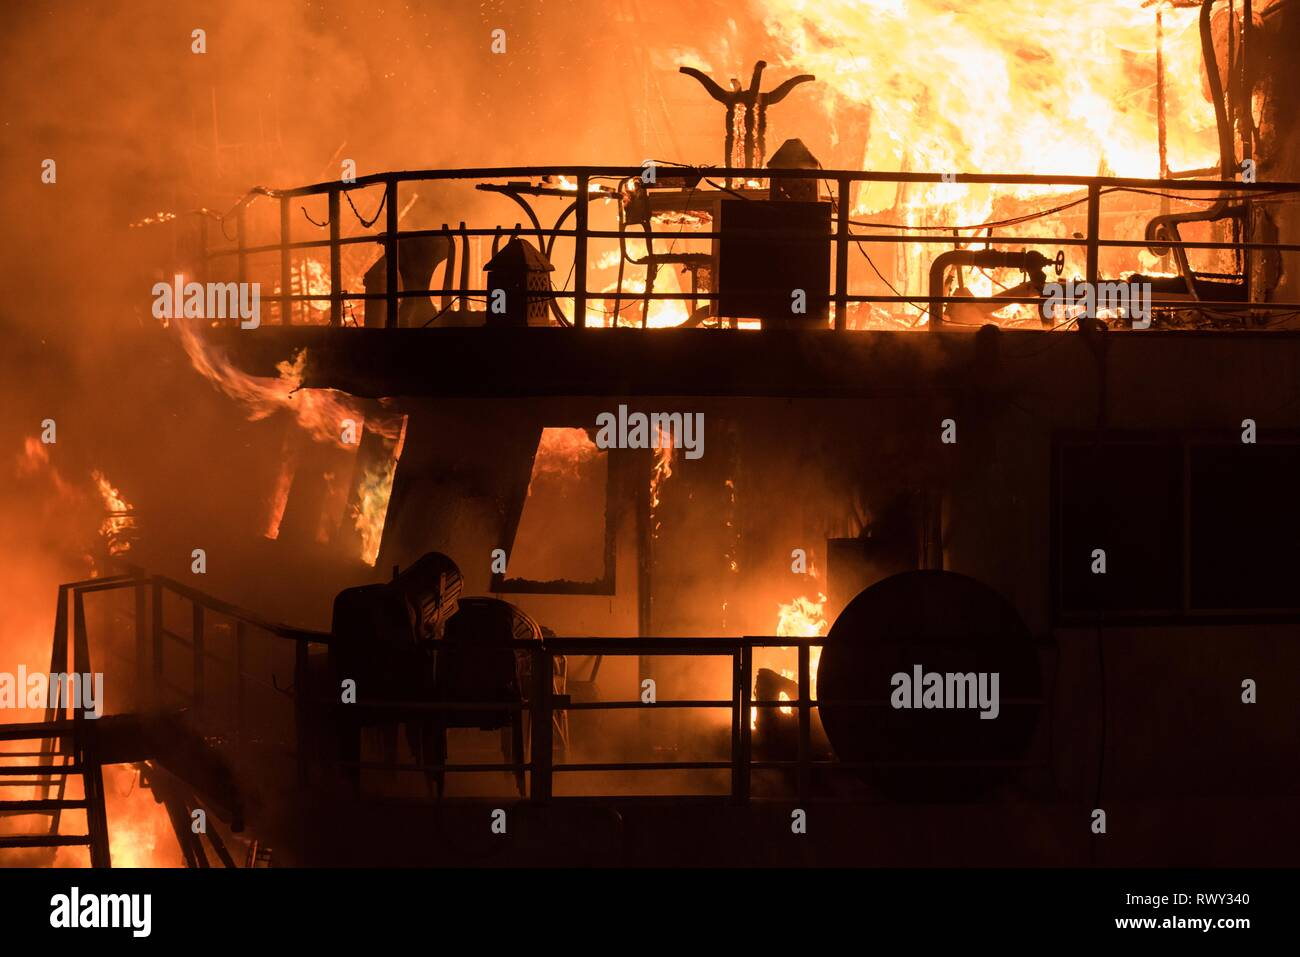 Cairo, Egypt. 7th Mar, 2019. A cruise on the Nile River is seen on fire in Cairo, Egypt, March 7, 2019. A massive fire engulfed a cruising restaurant overlooking the Nile River on Thursday evening in Maadi district in the Egyptian capital Cairo, eyewitnesses told Xinhua. Credit: Meng Tao/Xinhua/Alamy Live News - Stock Image